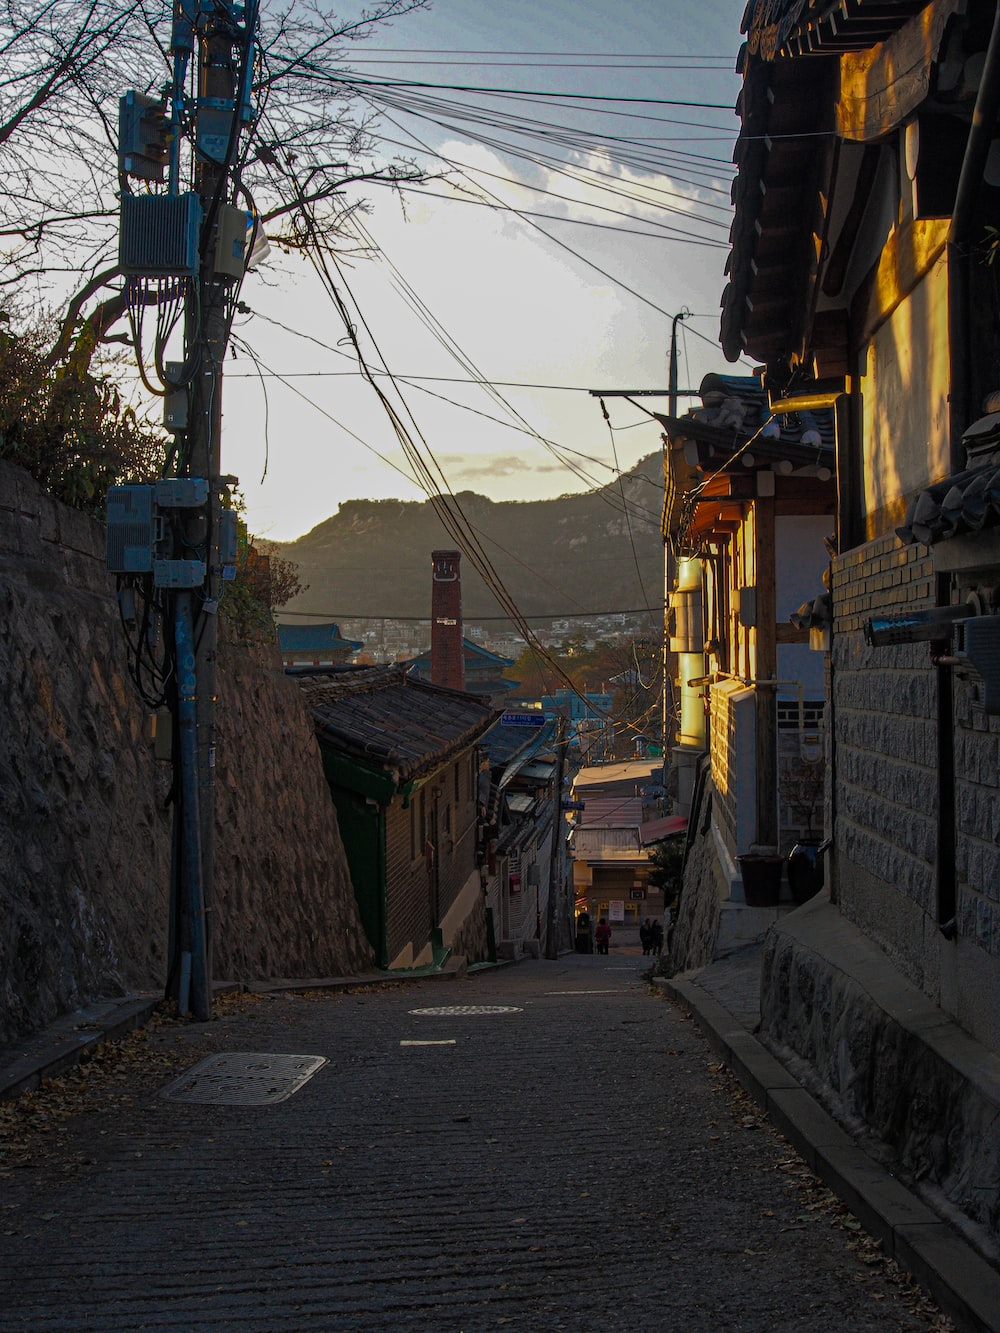 brown wooden houses near road during daytime